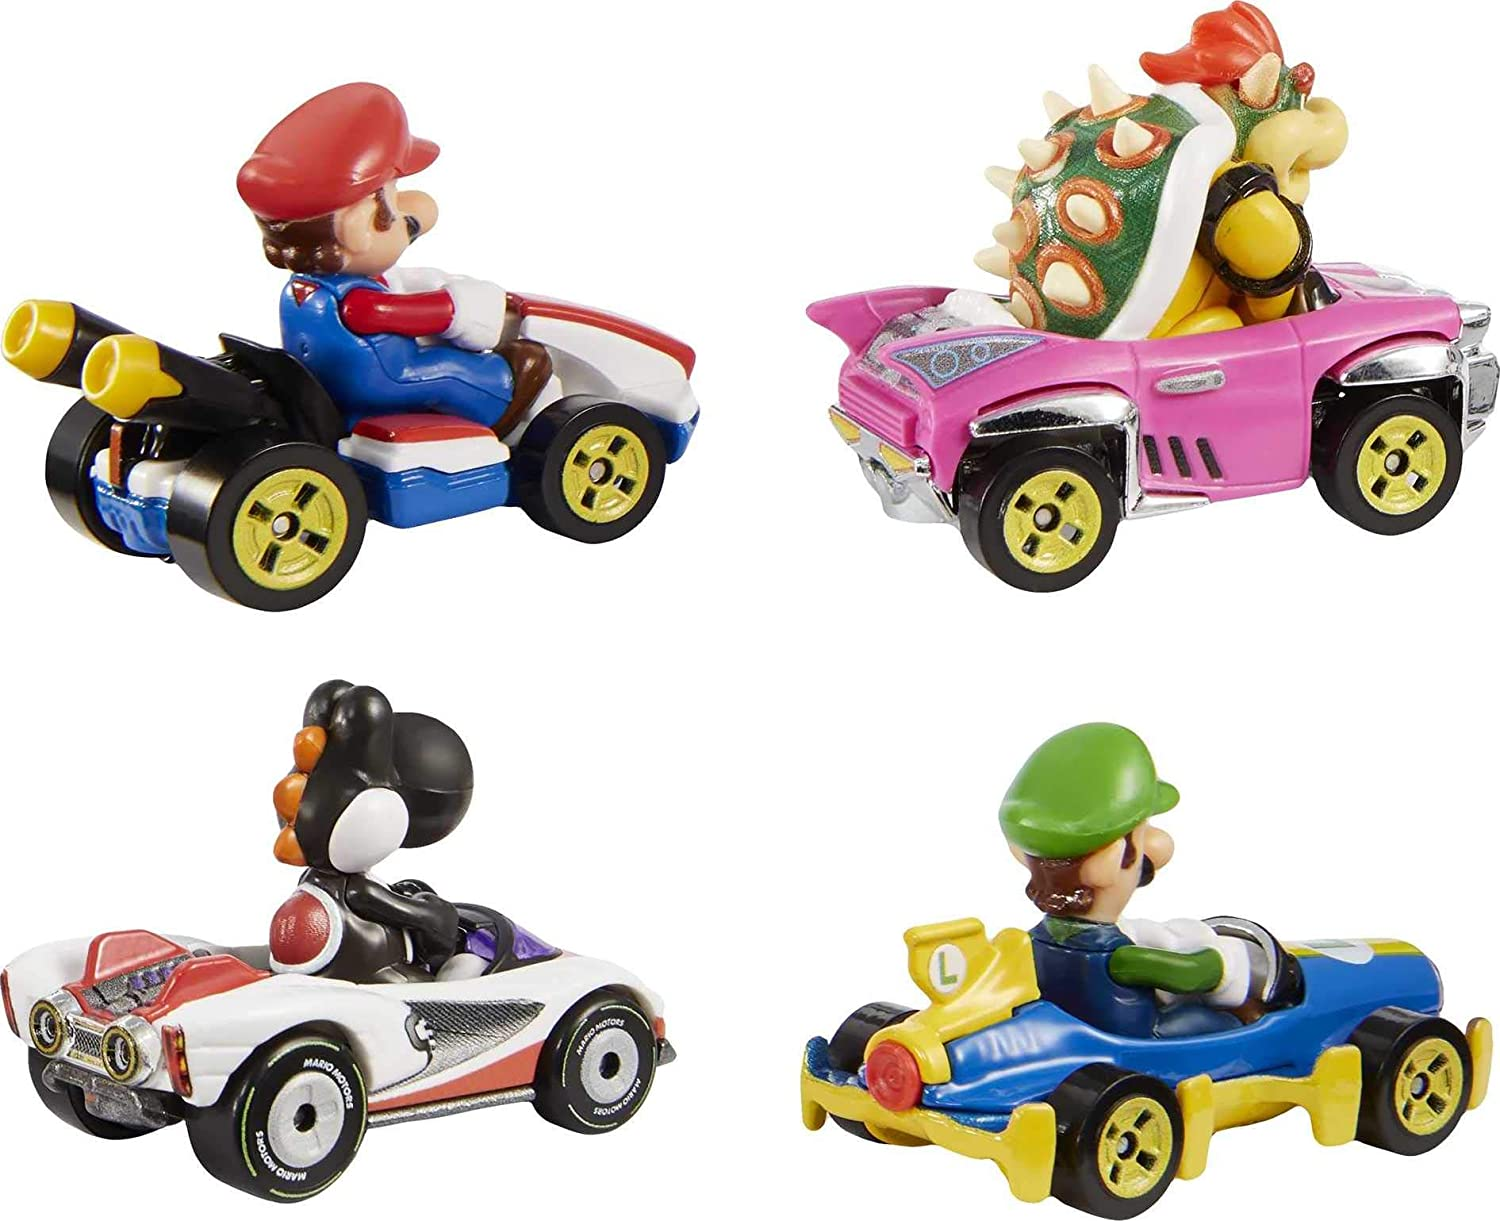 Hot Wheels Mario Kart Characters And Karts As Die Cast Toy Cars 4 Pack Amazon Exclusive